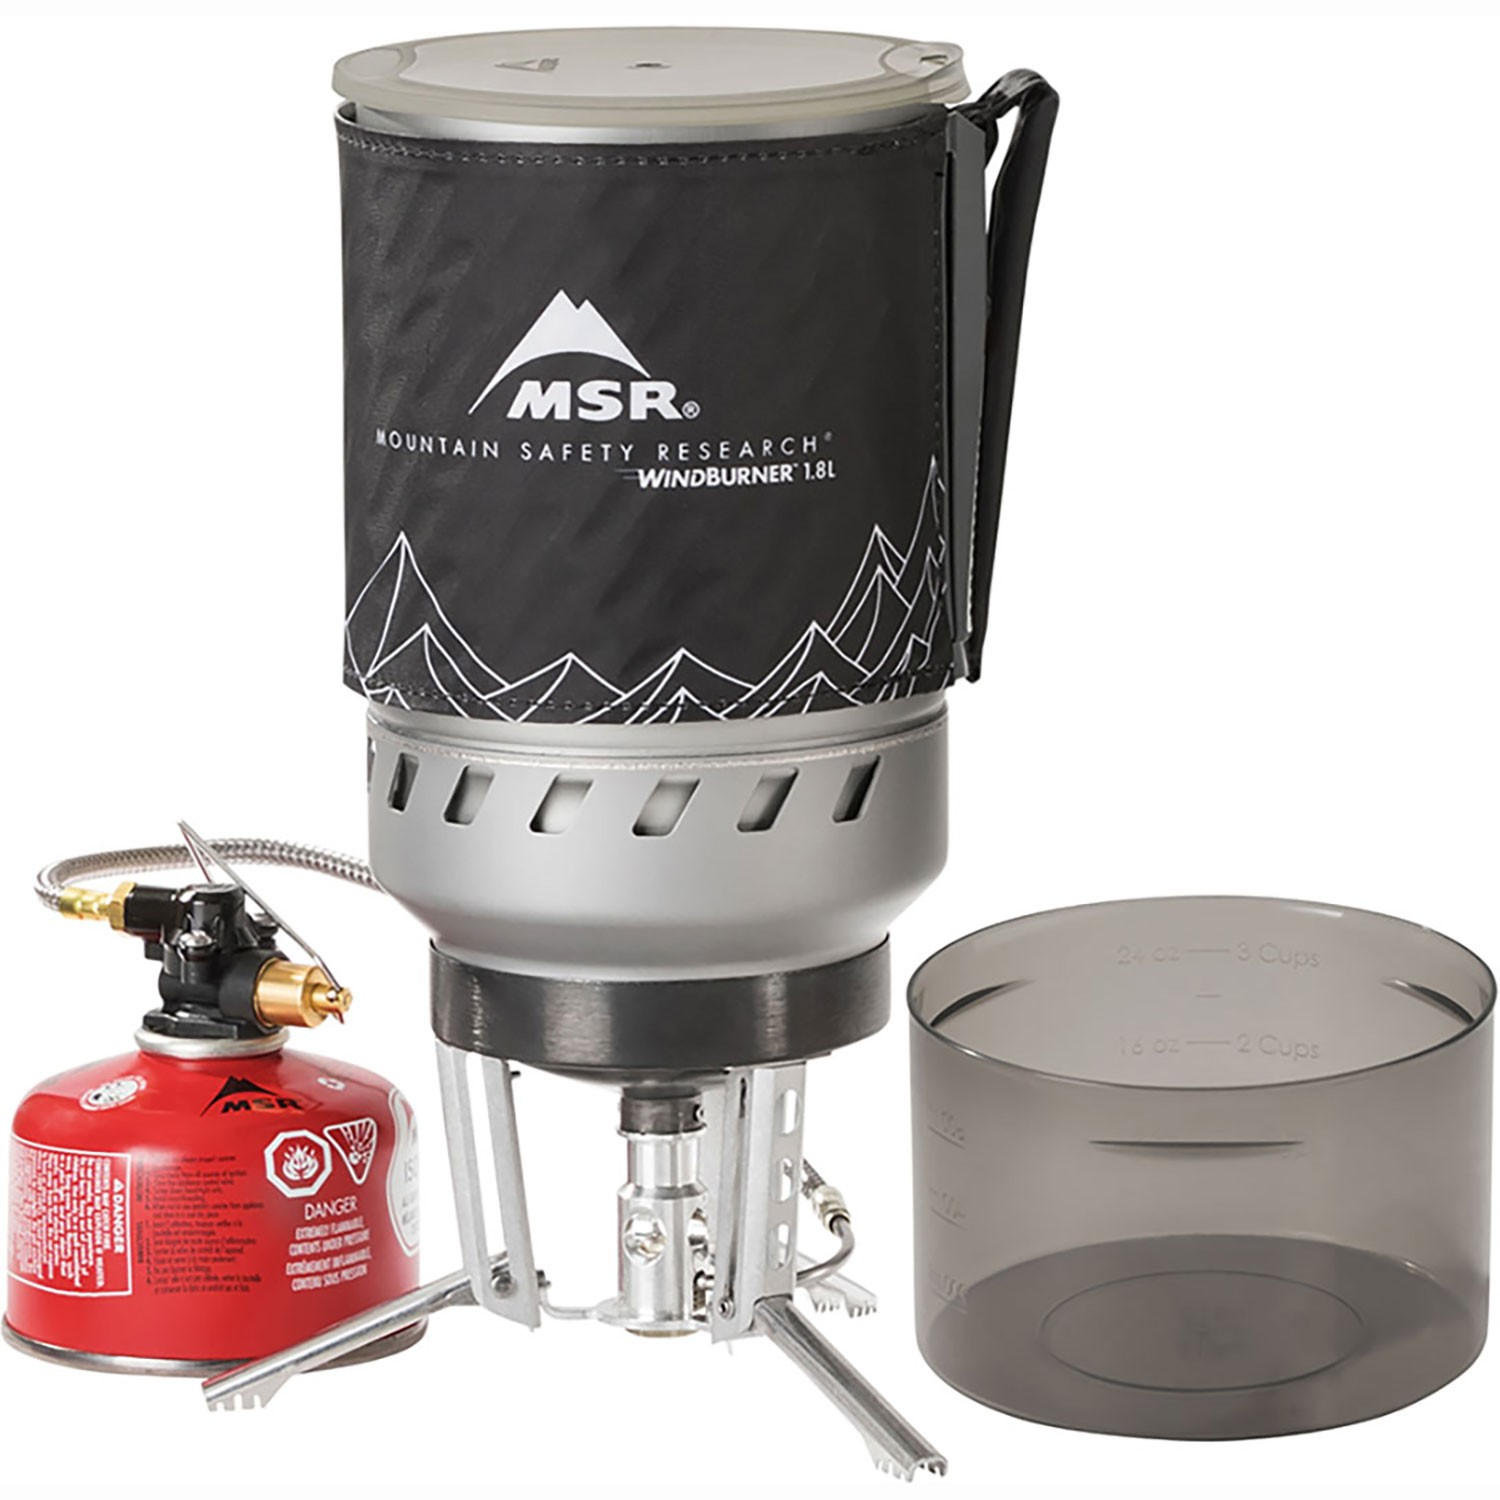 The MSR WindBurner Duo Stove System